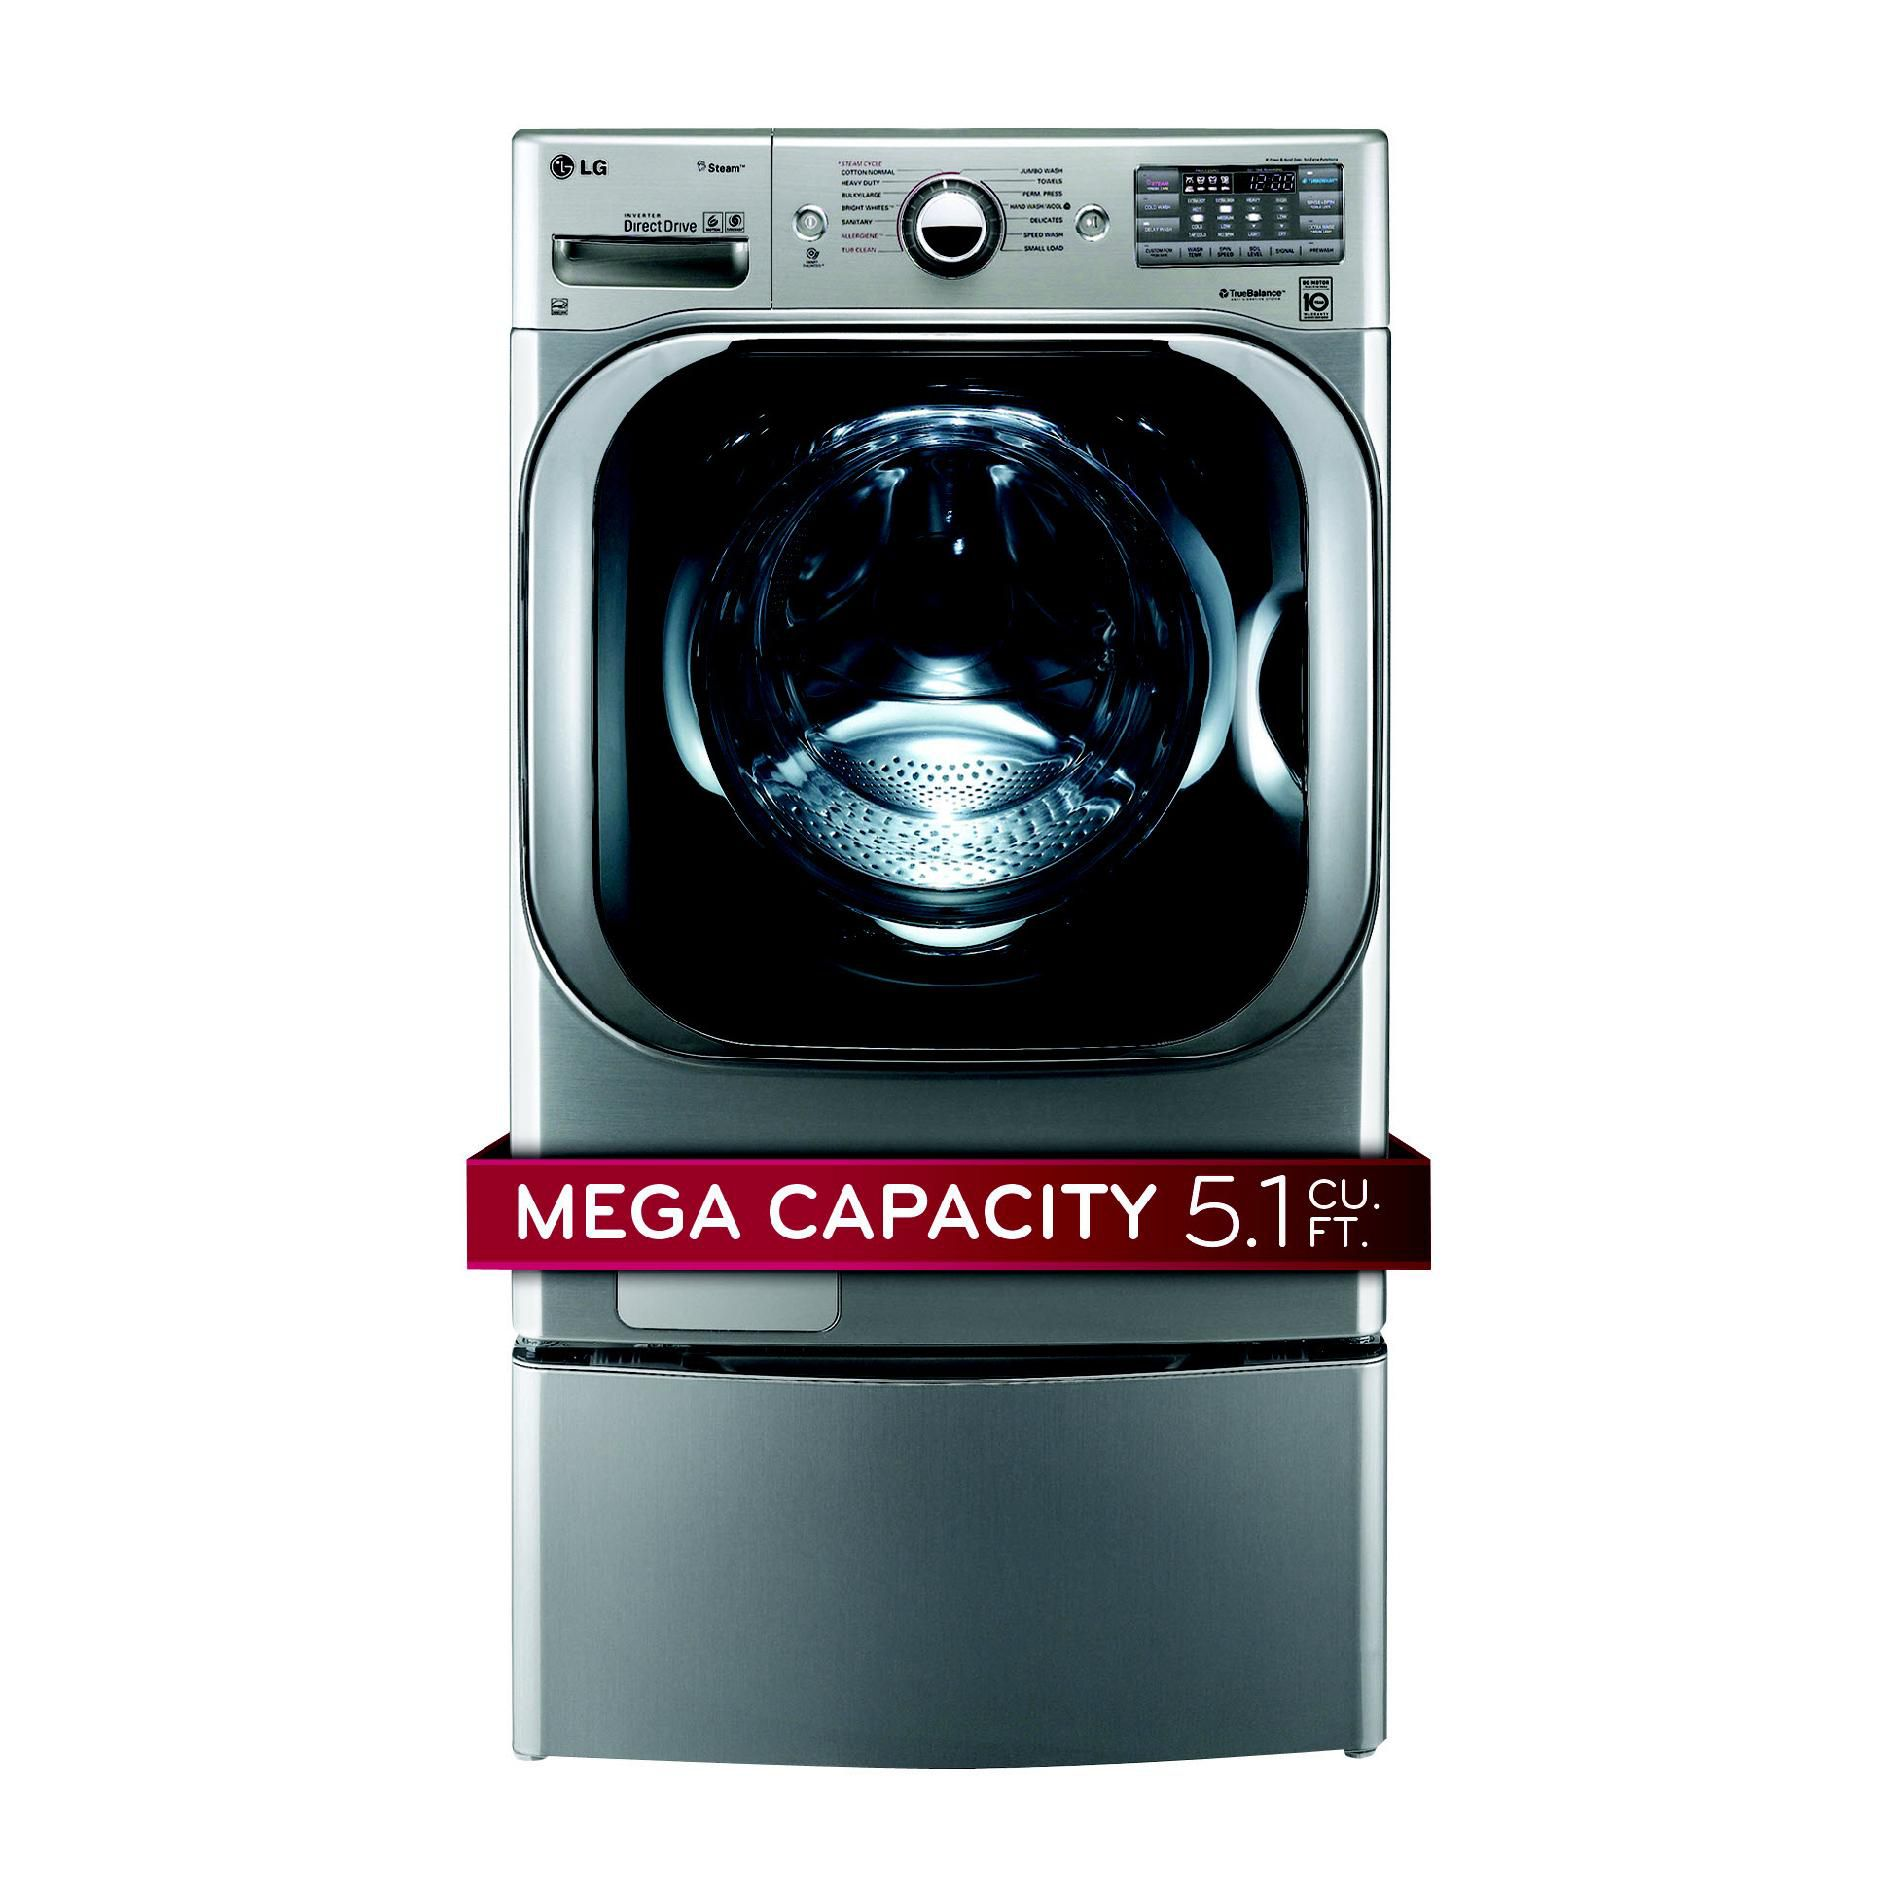 5.1 cu. ft. Mega-Capacity Steam Front-Load Washer - Graphite Steel